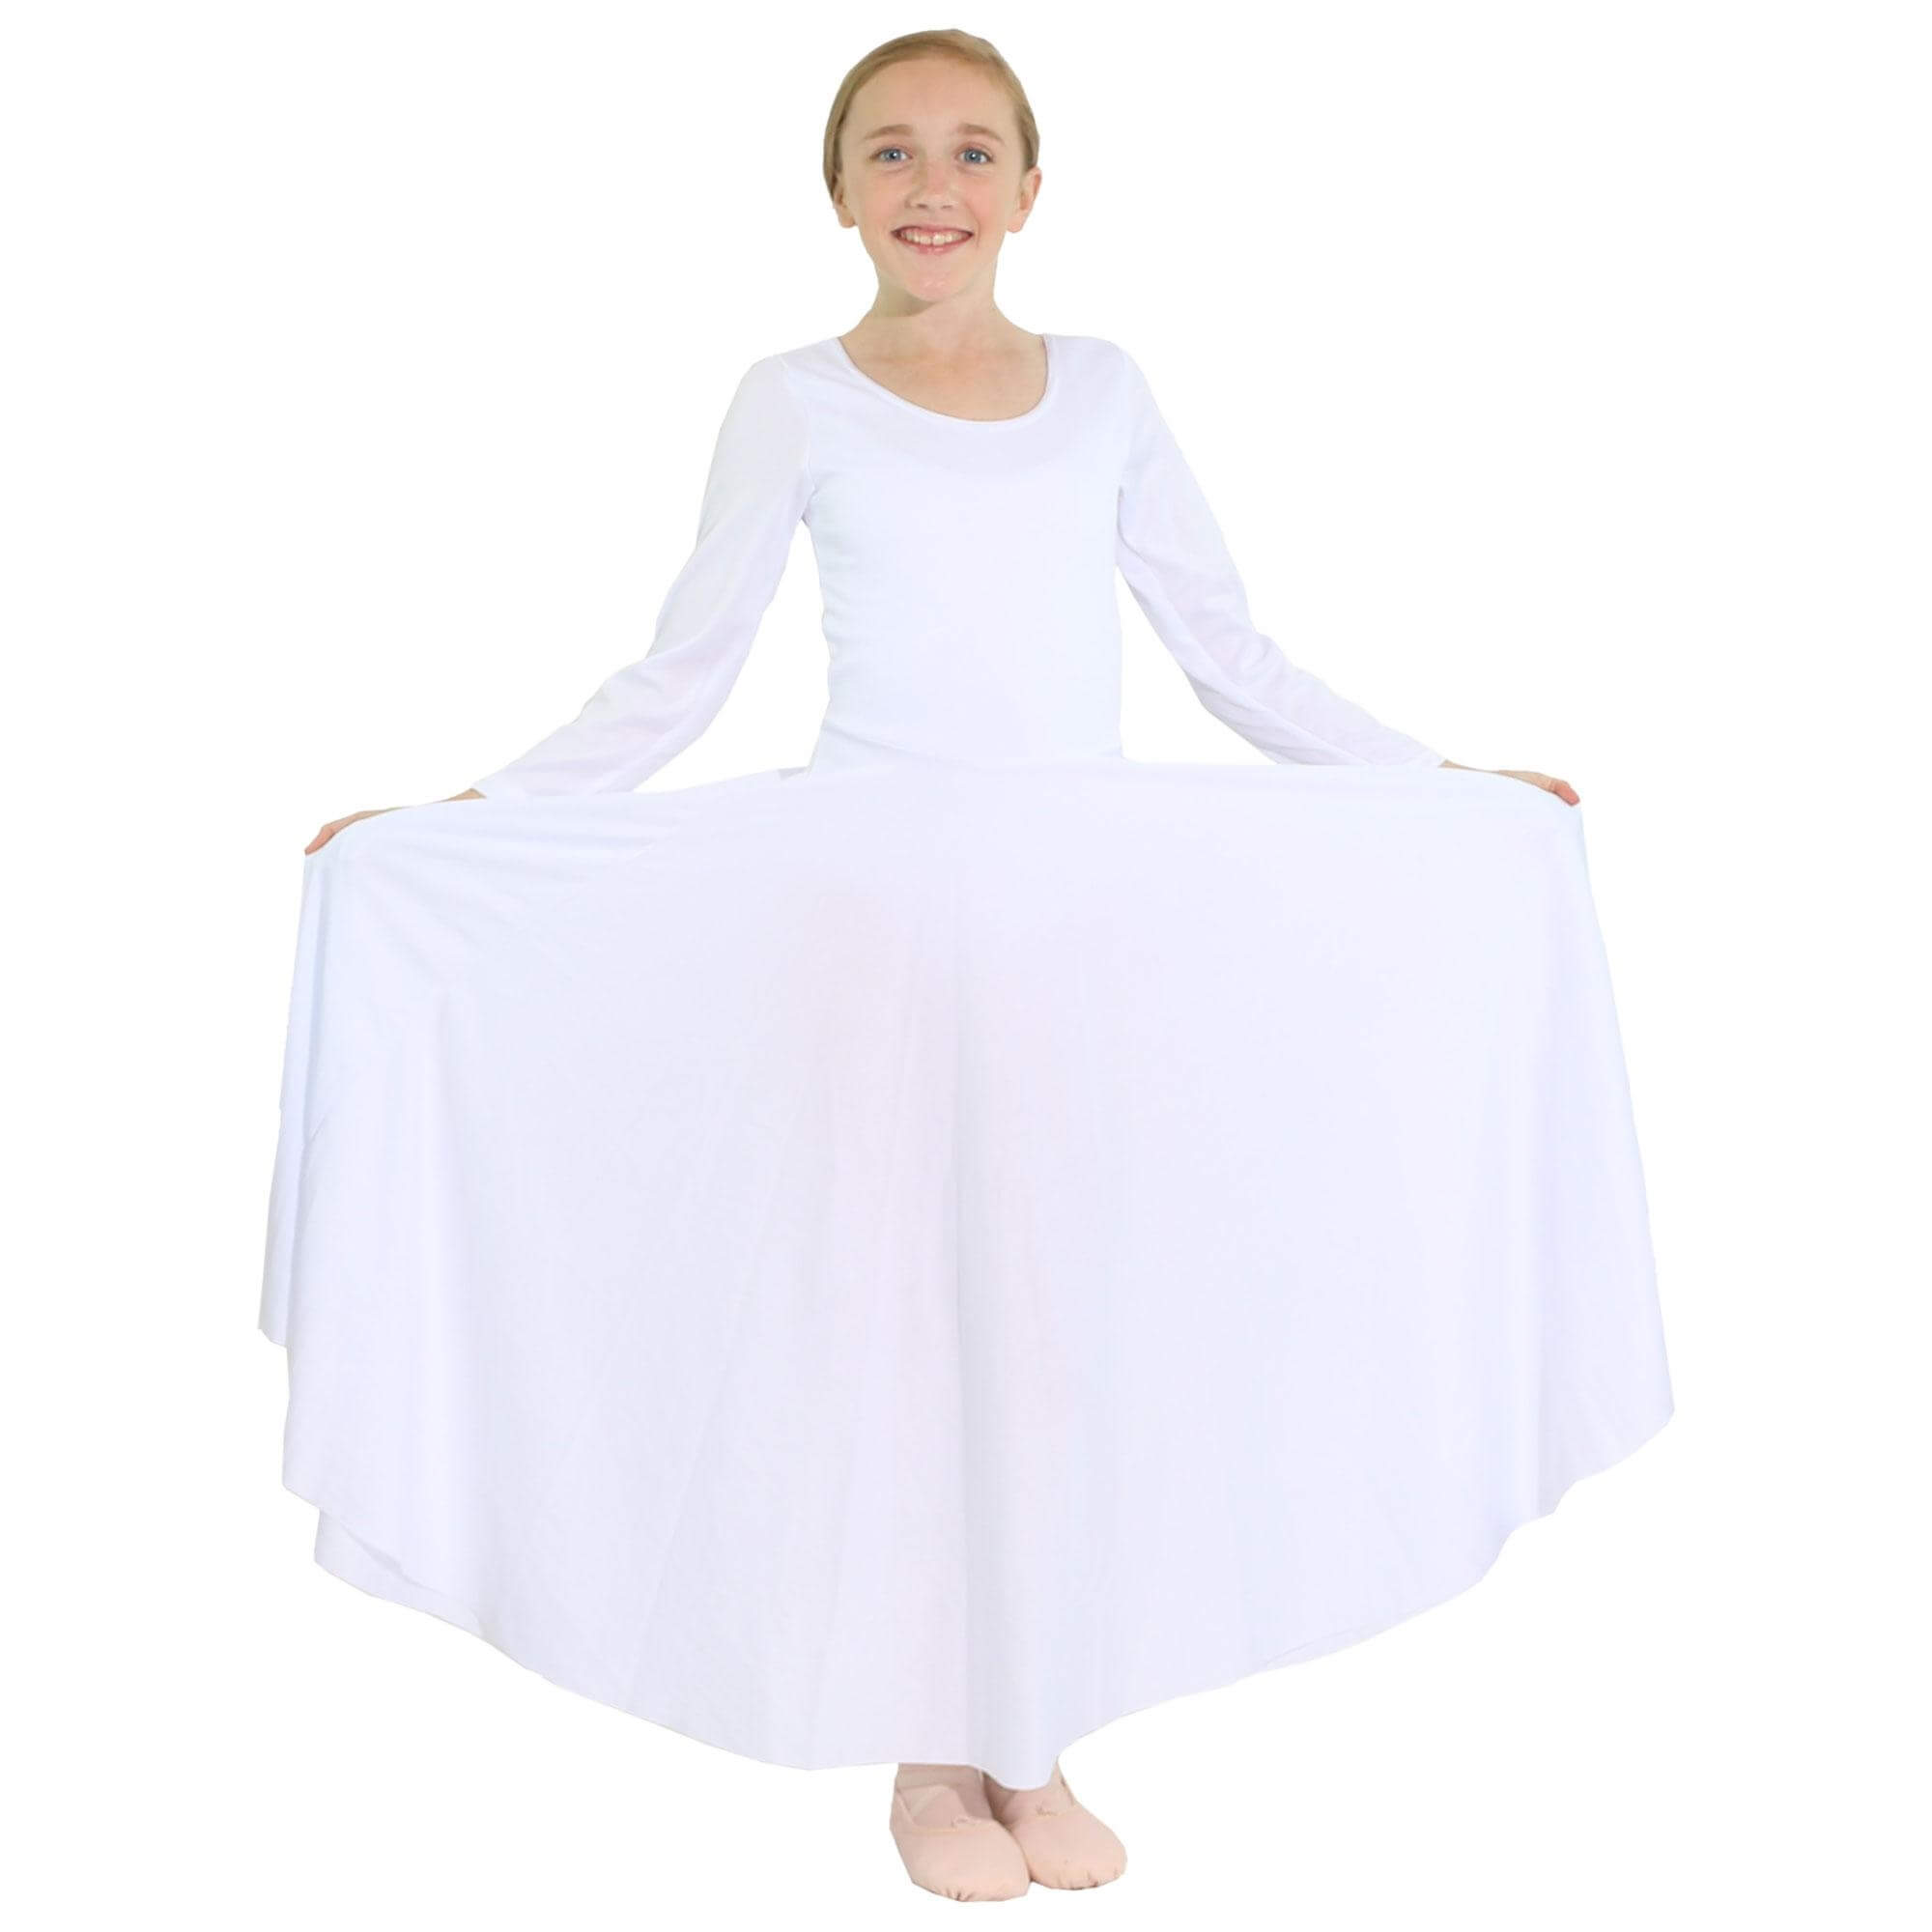 1c82308135eb7 Worship Dancewear: Pentecostal Dance Dress, mime costume, praise ...